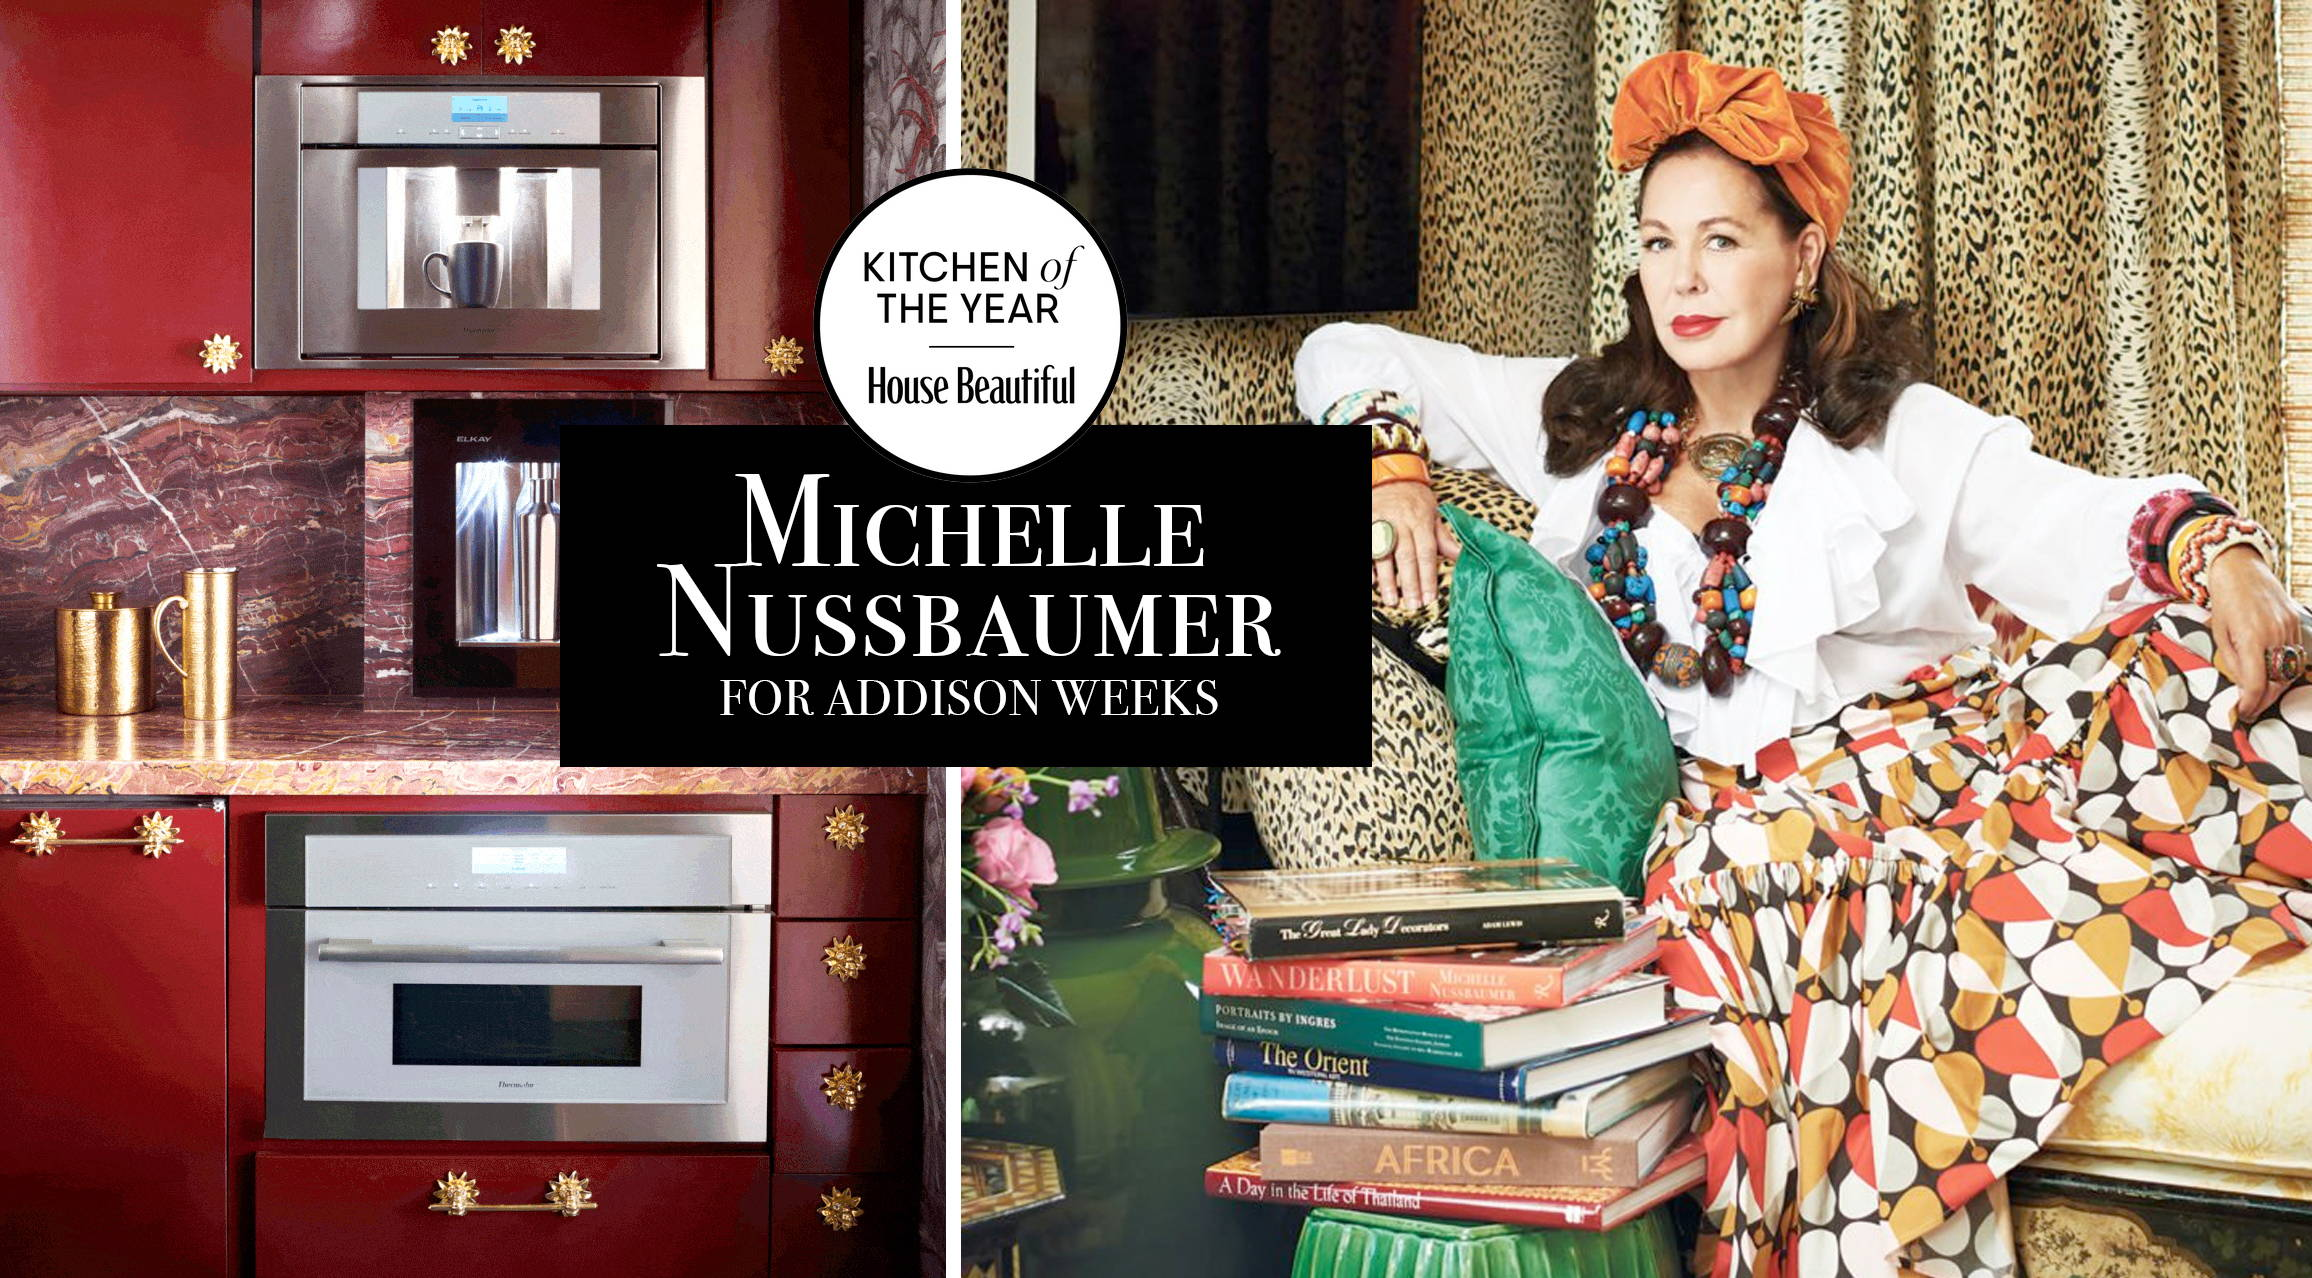 House Beautiful Kitchen of the Year by Michelle Nussbaumer Featuring Modern Matter by Addison Weeks Hardware